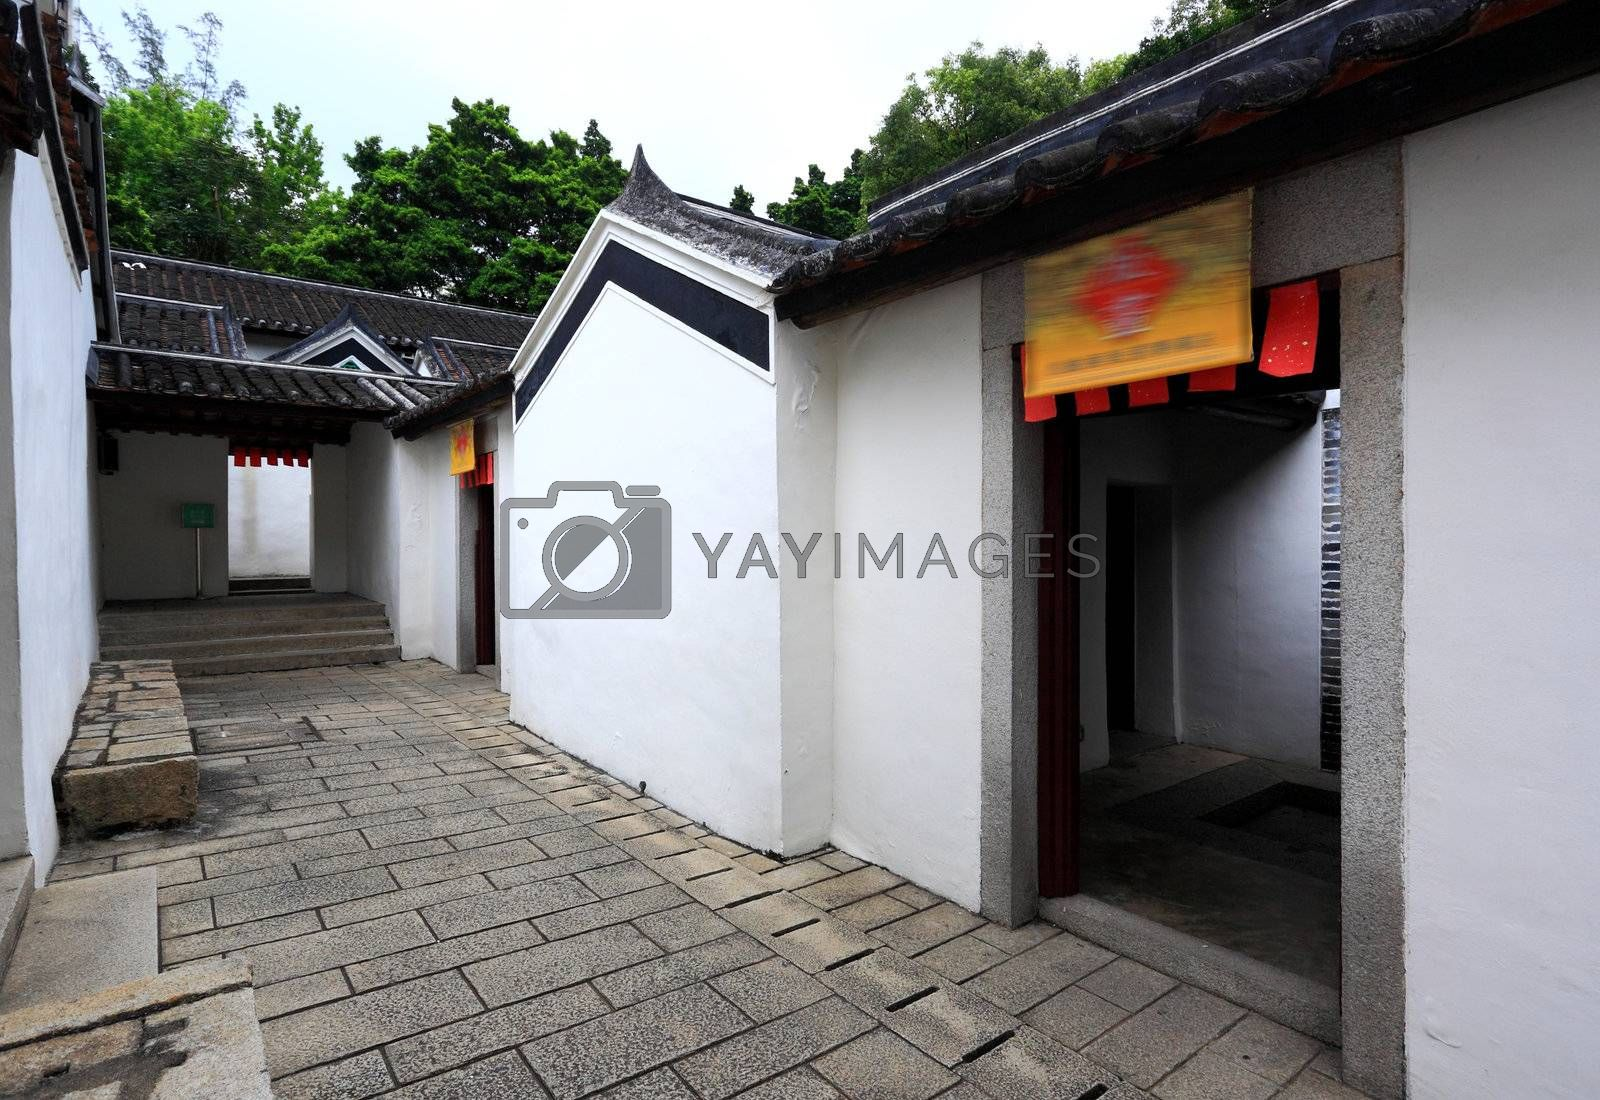 Royalty free image of chinese house by leungchopan